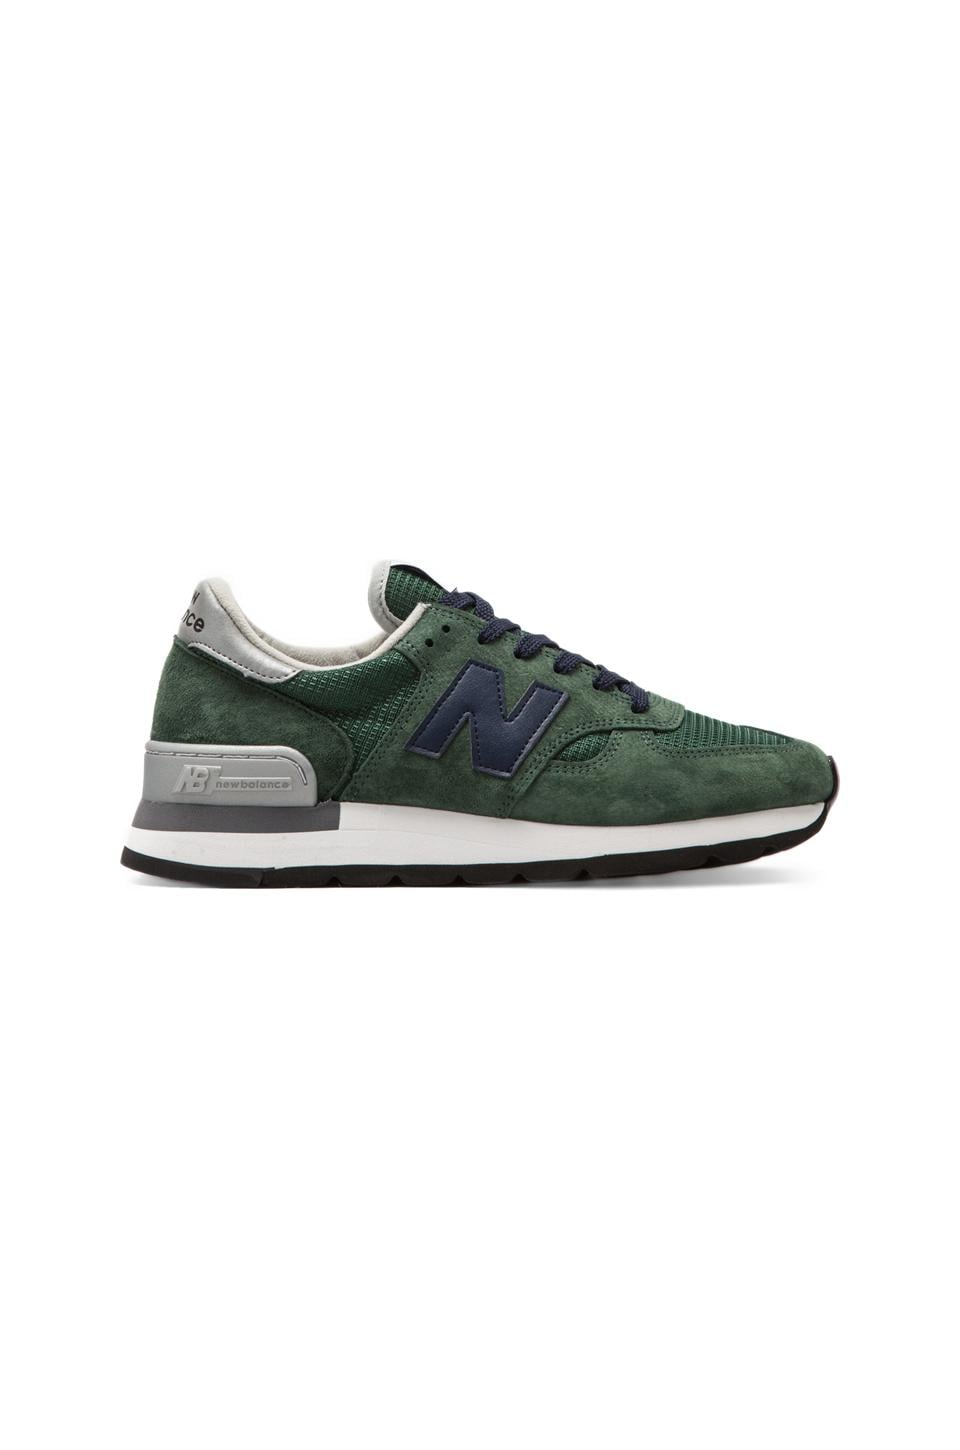 New Balance Made in the USA M990 in Green/Navy